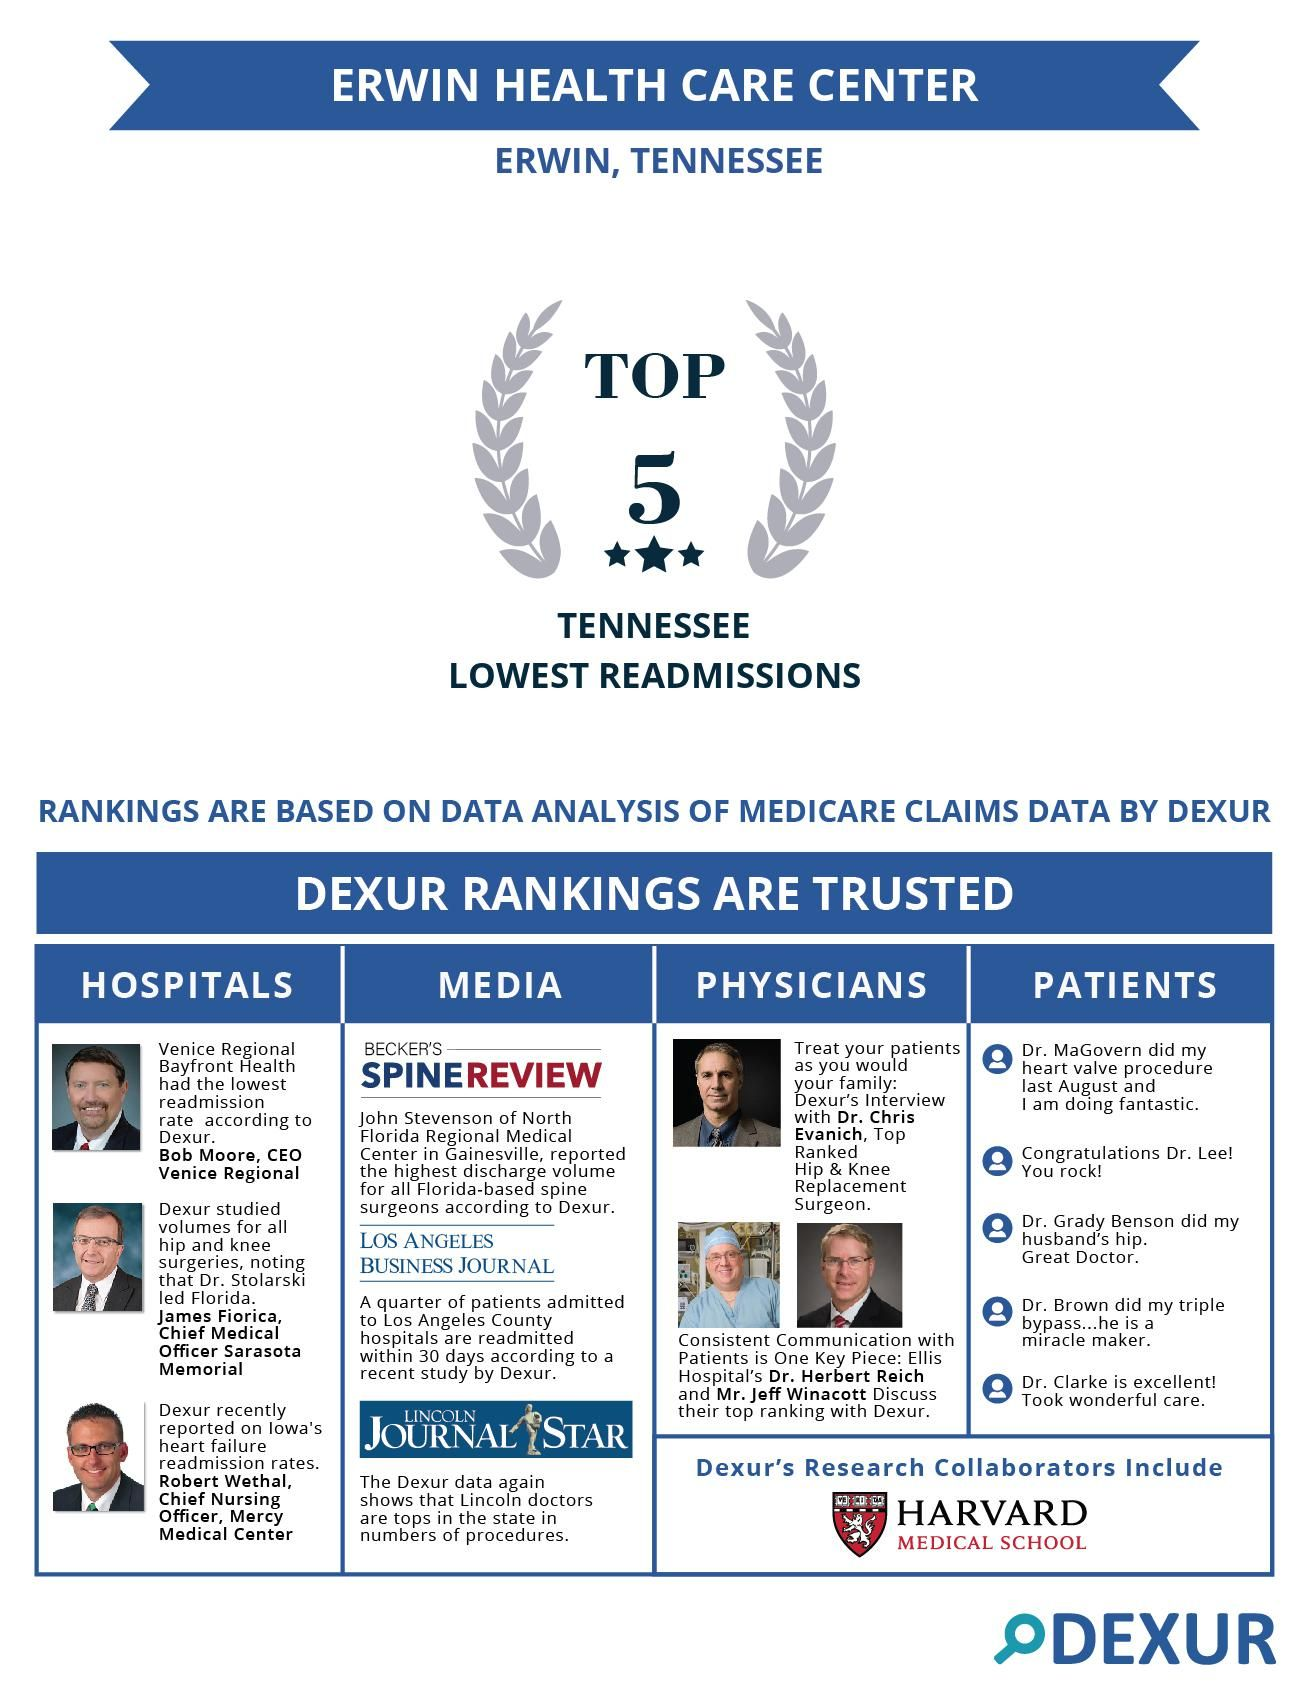 Erwin health care center top ranked nursing home in